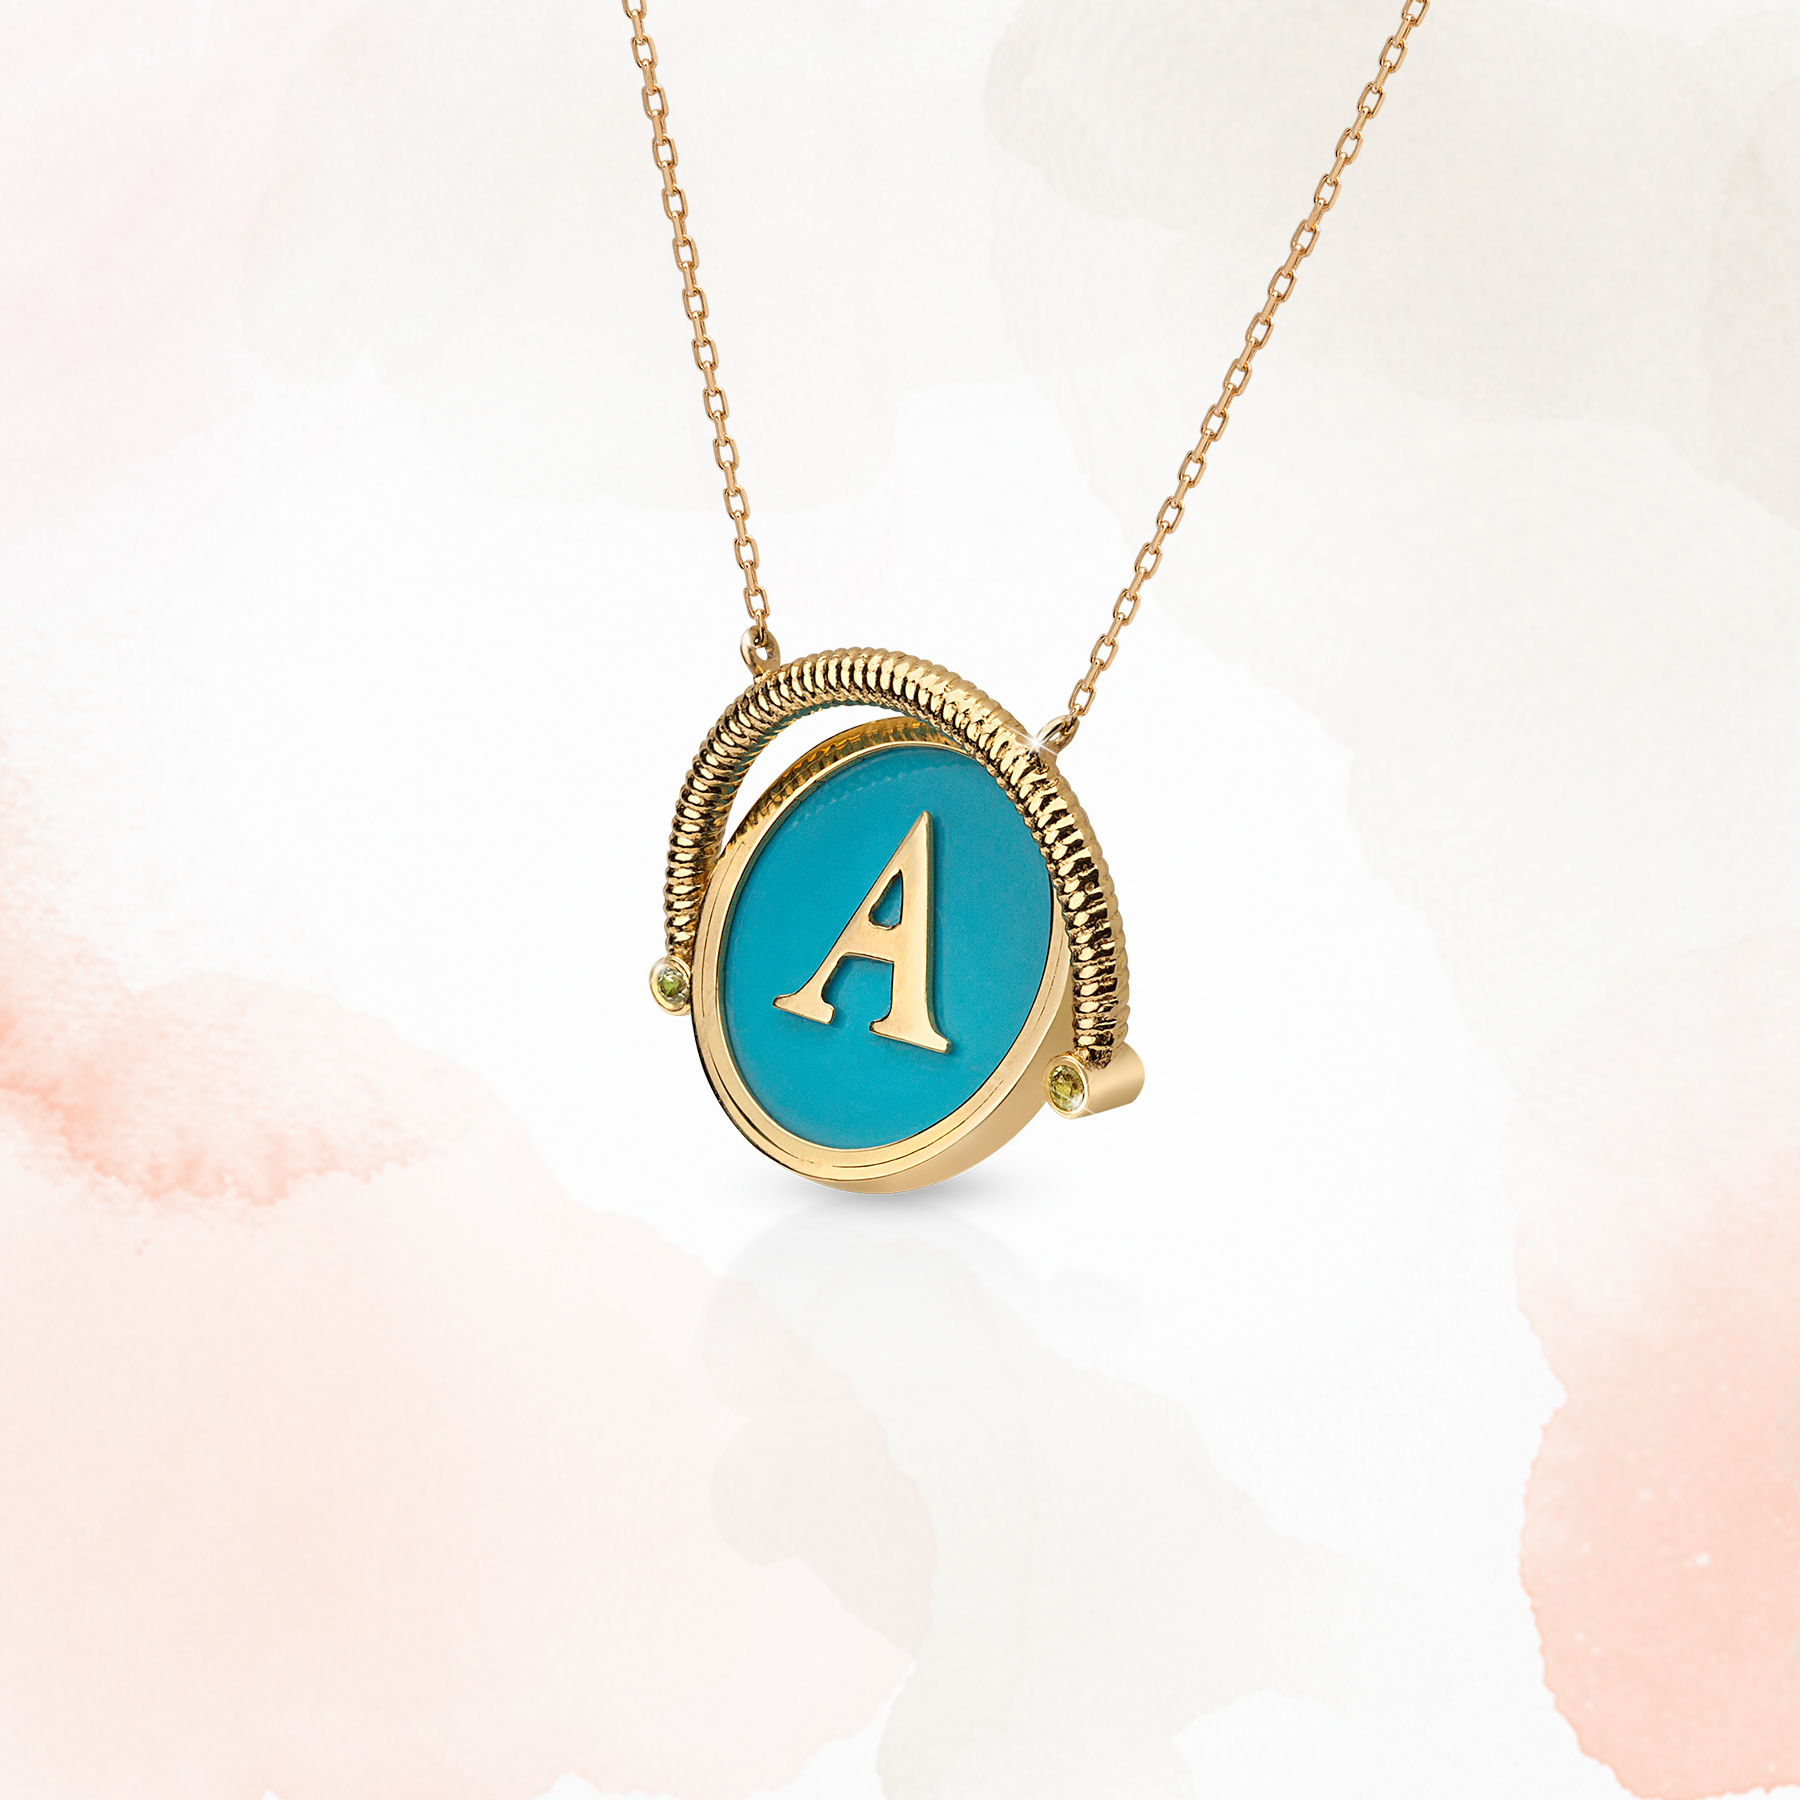 Vega Necklace - 18K Gold by Aveen on curated-crowd.com